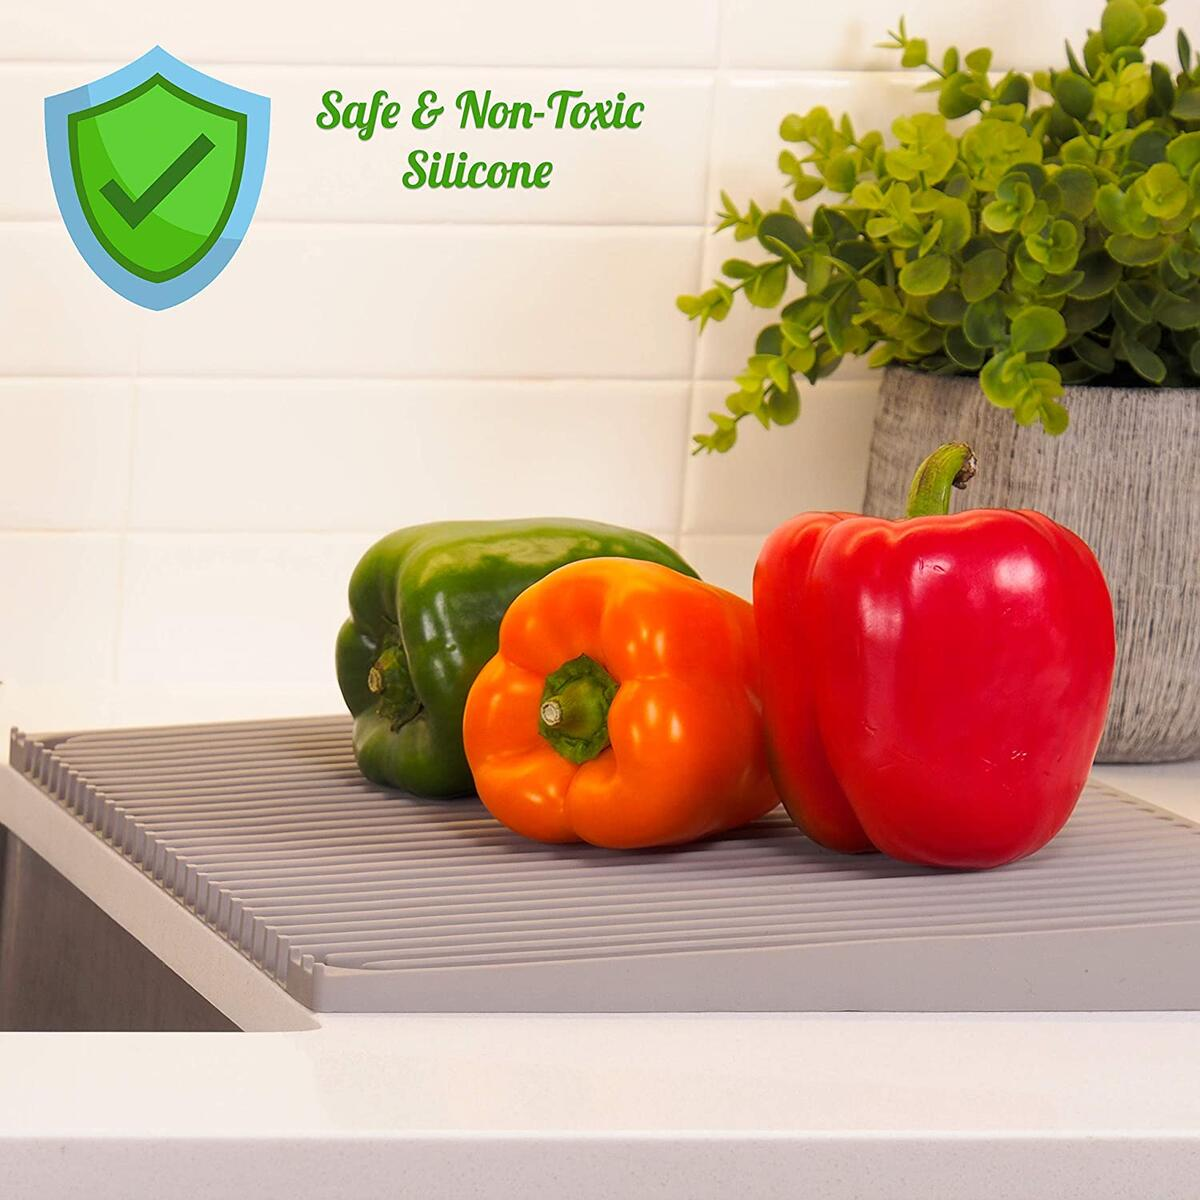 NIUHOM Silicone Drying Mat - Self-Draining Kitchen Counter Mat for drying Dishes, Cups, Vegetables and Fruits - Wedge Shaped